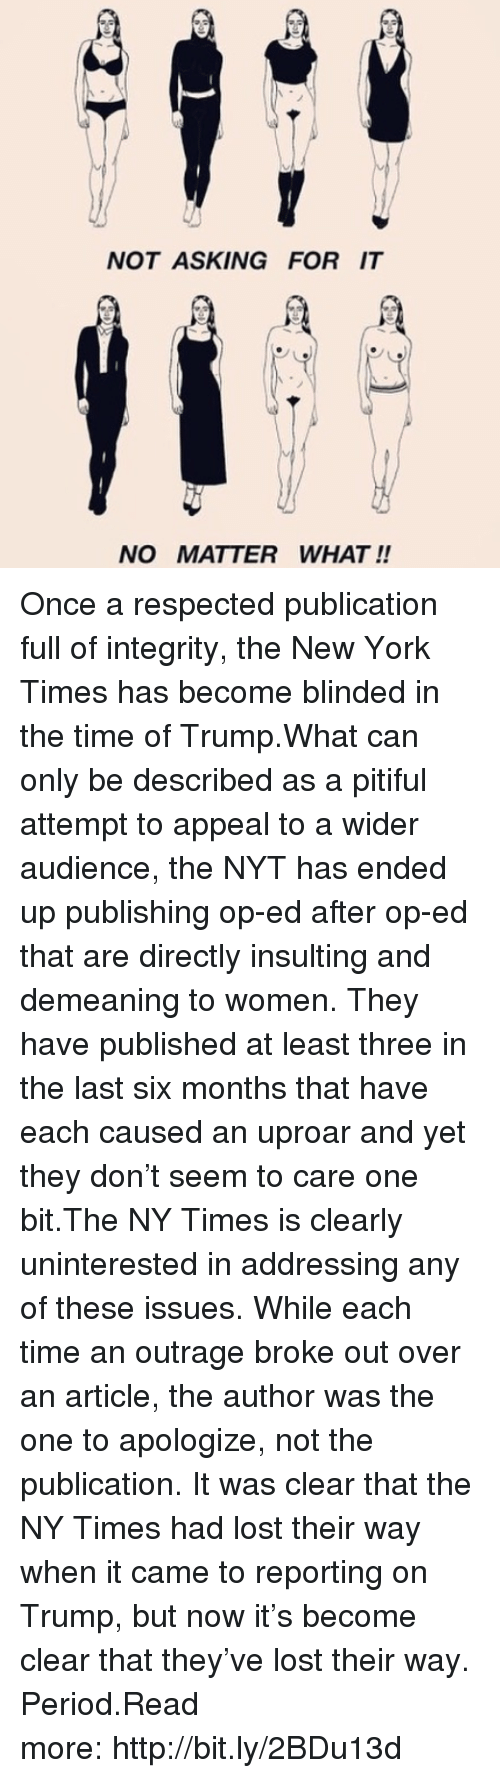 Pitiful: NOT ASKING FOR IT  NO MATTER WHAT !! Once a respected publication full of integrity, the New York Times has become blinded in the time of Trump.What can only be described as a pitiful attempt to appeal to a wider audience, the NYT has ended up publishing op-ed after op-ed that are directly insulting and demeaning to women. They have published at least three in the last six months that have each caused an uproar and yet they don't seem to care one bit.The NY Times is clearly uninterested in addressing any of these issues. While each time an outrage broke out over an article, the author was the one to apologize, not the publication. It was clear that the NY Times had lost their way when it came to reporting on Trump, but now it's become clear that they've lost their way. Period.Read more:http://bit.ly/2BDu13d